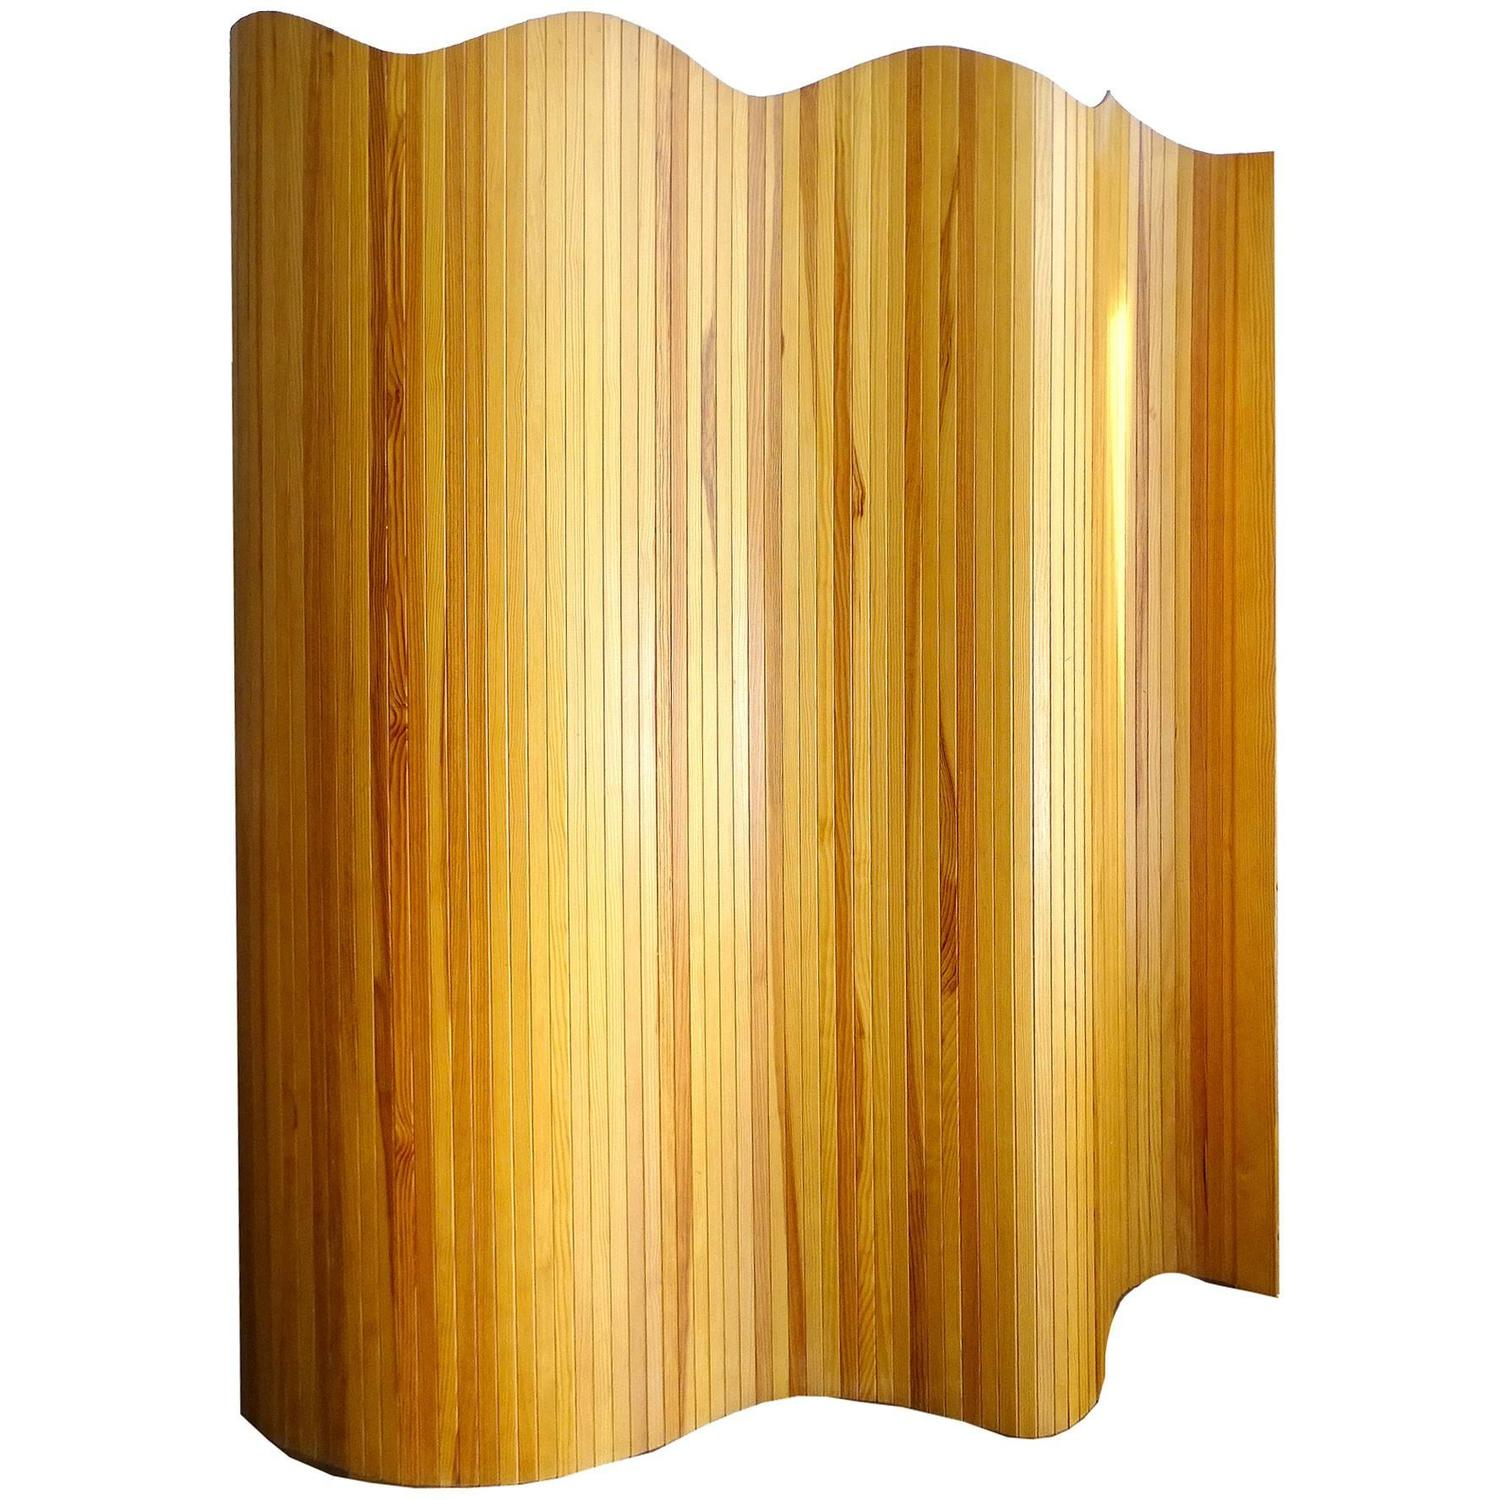 French Wood Tambour Divider Screen 1960s Modernist Undulating Design At 1stdibs